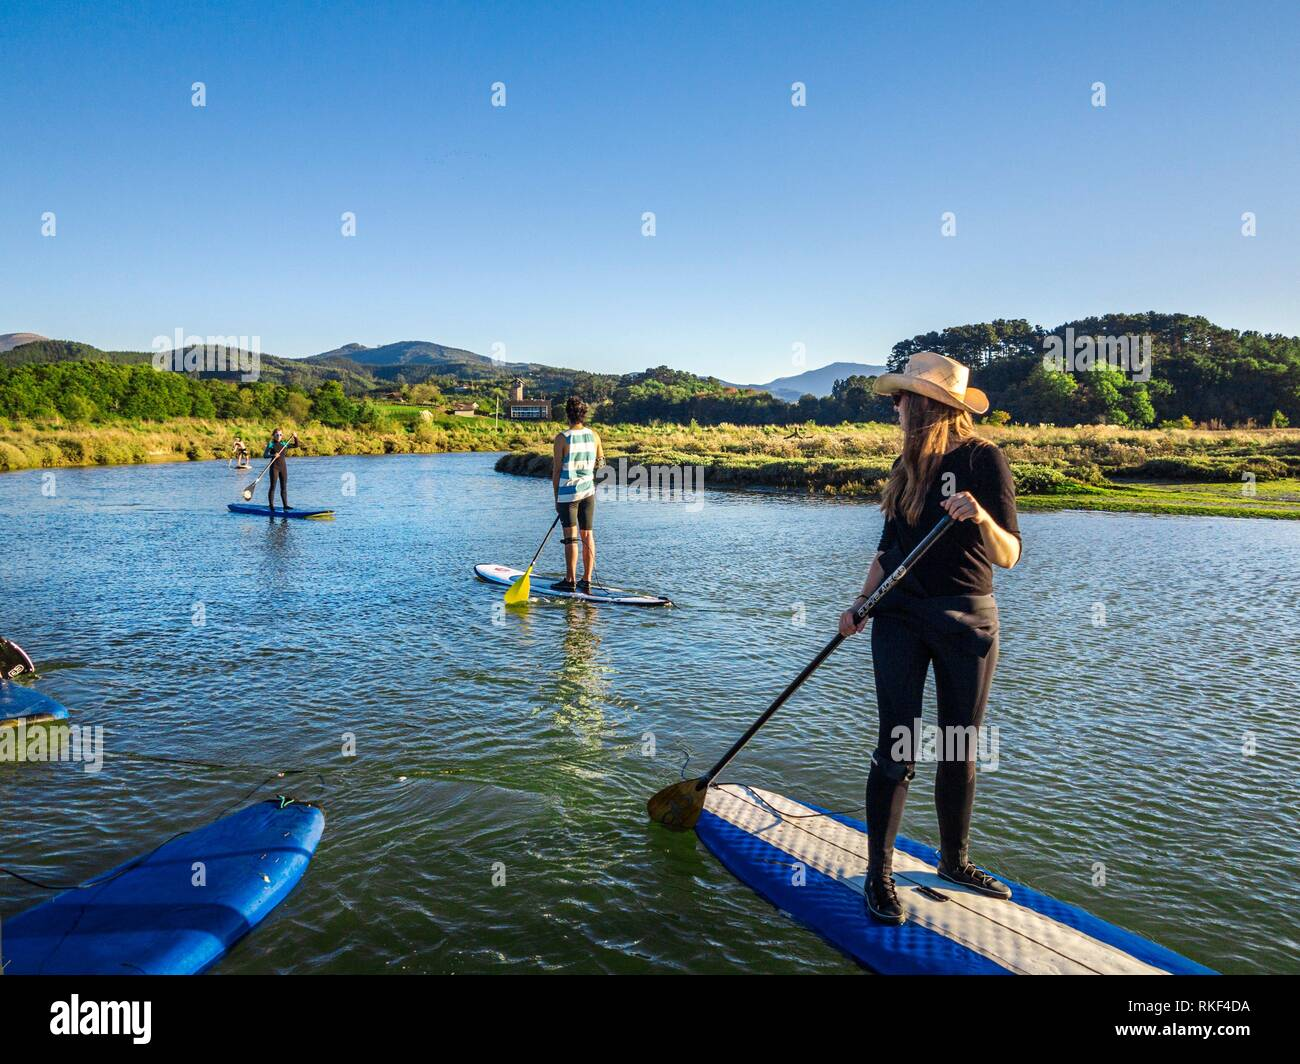 Stand up Paddle Surf (SUP) in Urdaibai Estuary. Urdaibai Biosphere Reserve. Biscay, Basque Country, Spain. - Stock Image